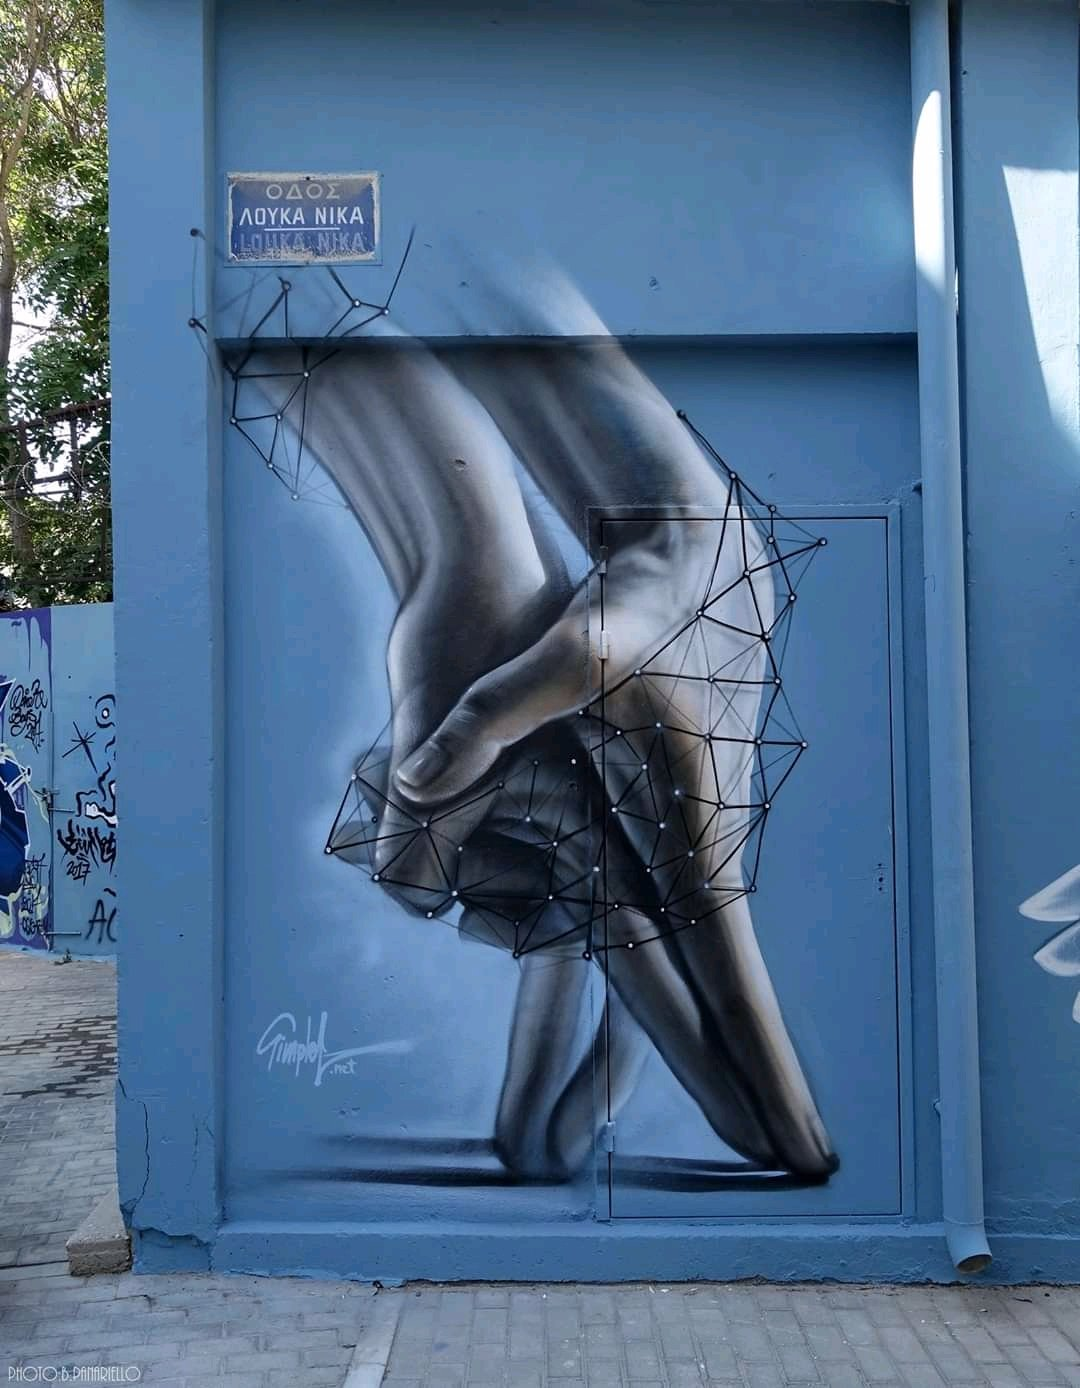 she: do you happen to feel alone? he: sometimes, sometimes she: ... the next time it happens, could you call me? Art by Simple G #StreetArt #Art #Love #Hands #Beauty #Poetry #Graffiti #Mural #UrbanArt https://t.co/QIJsuPiQXL